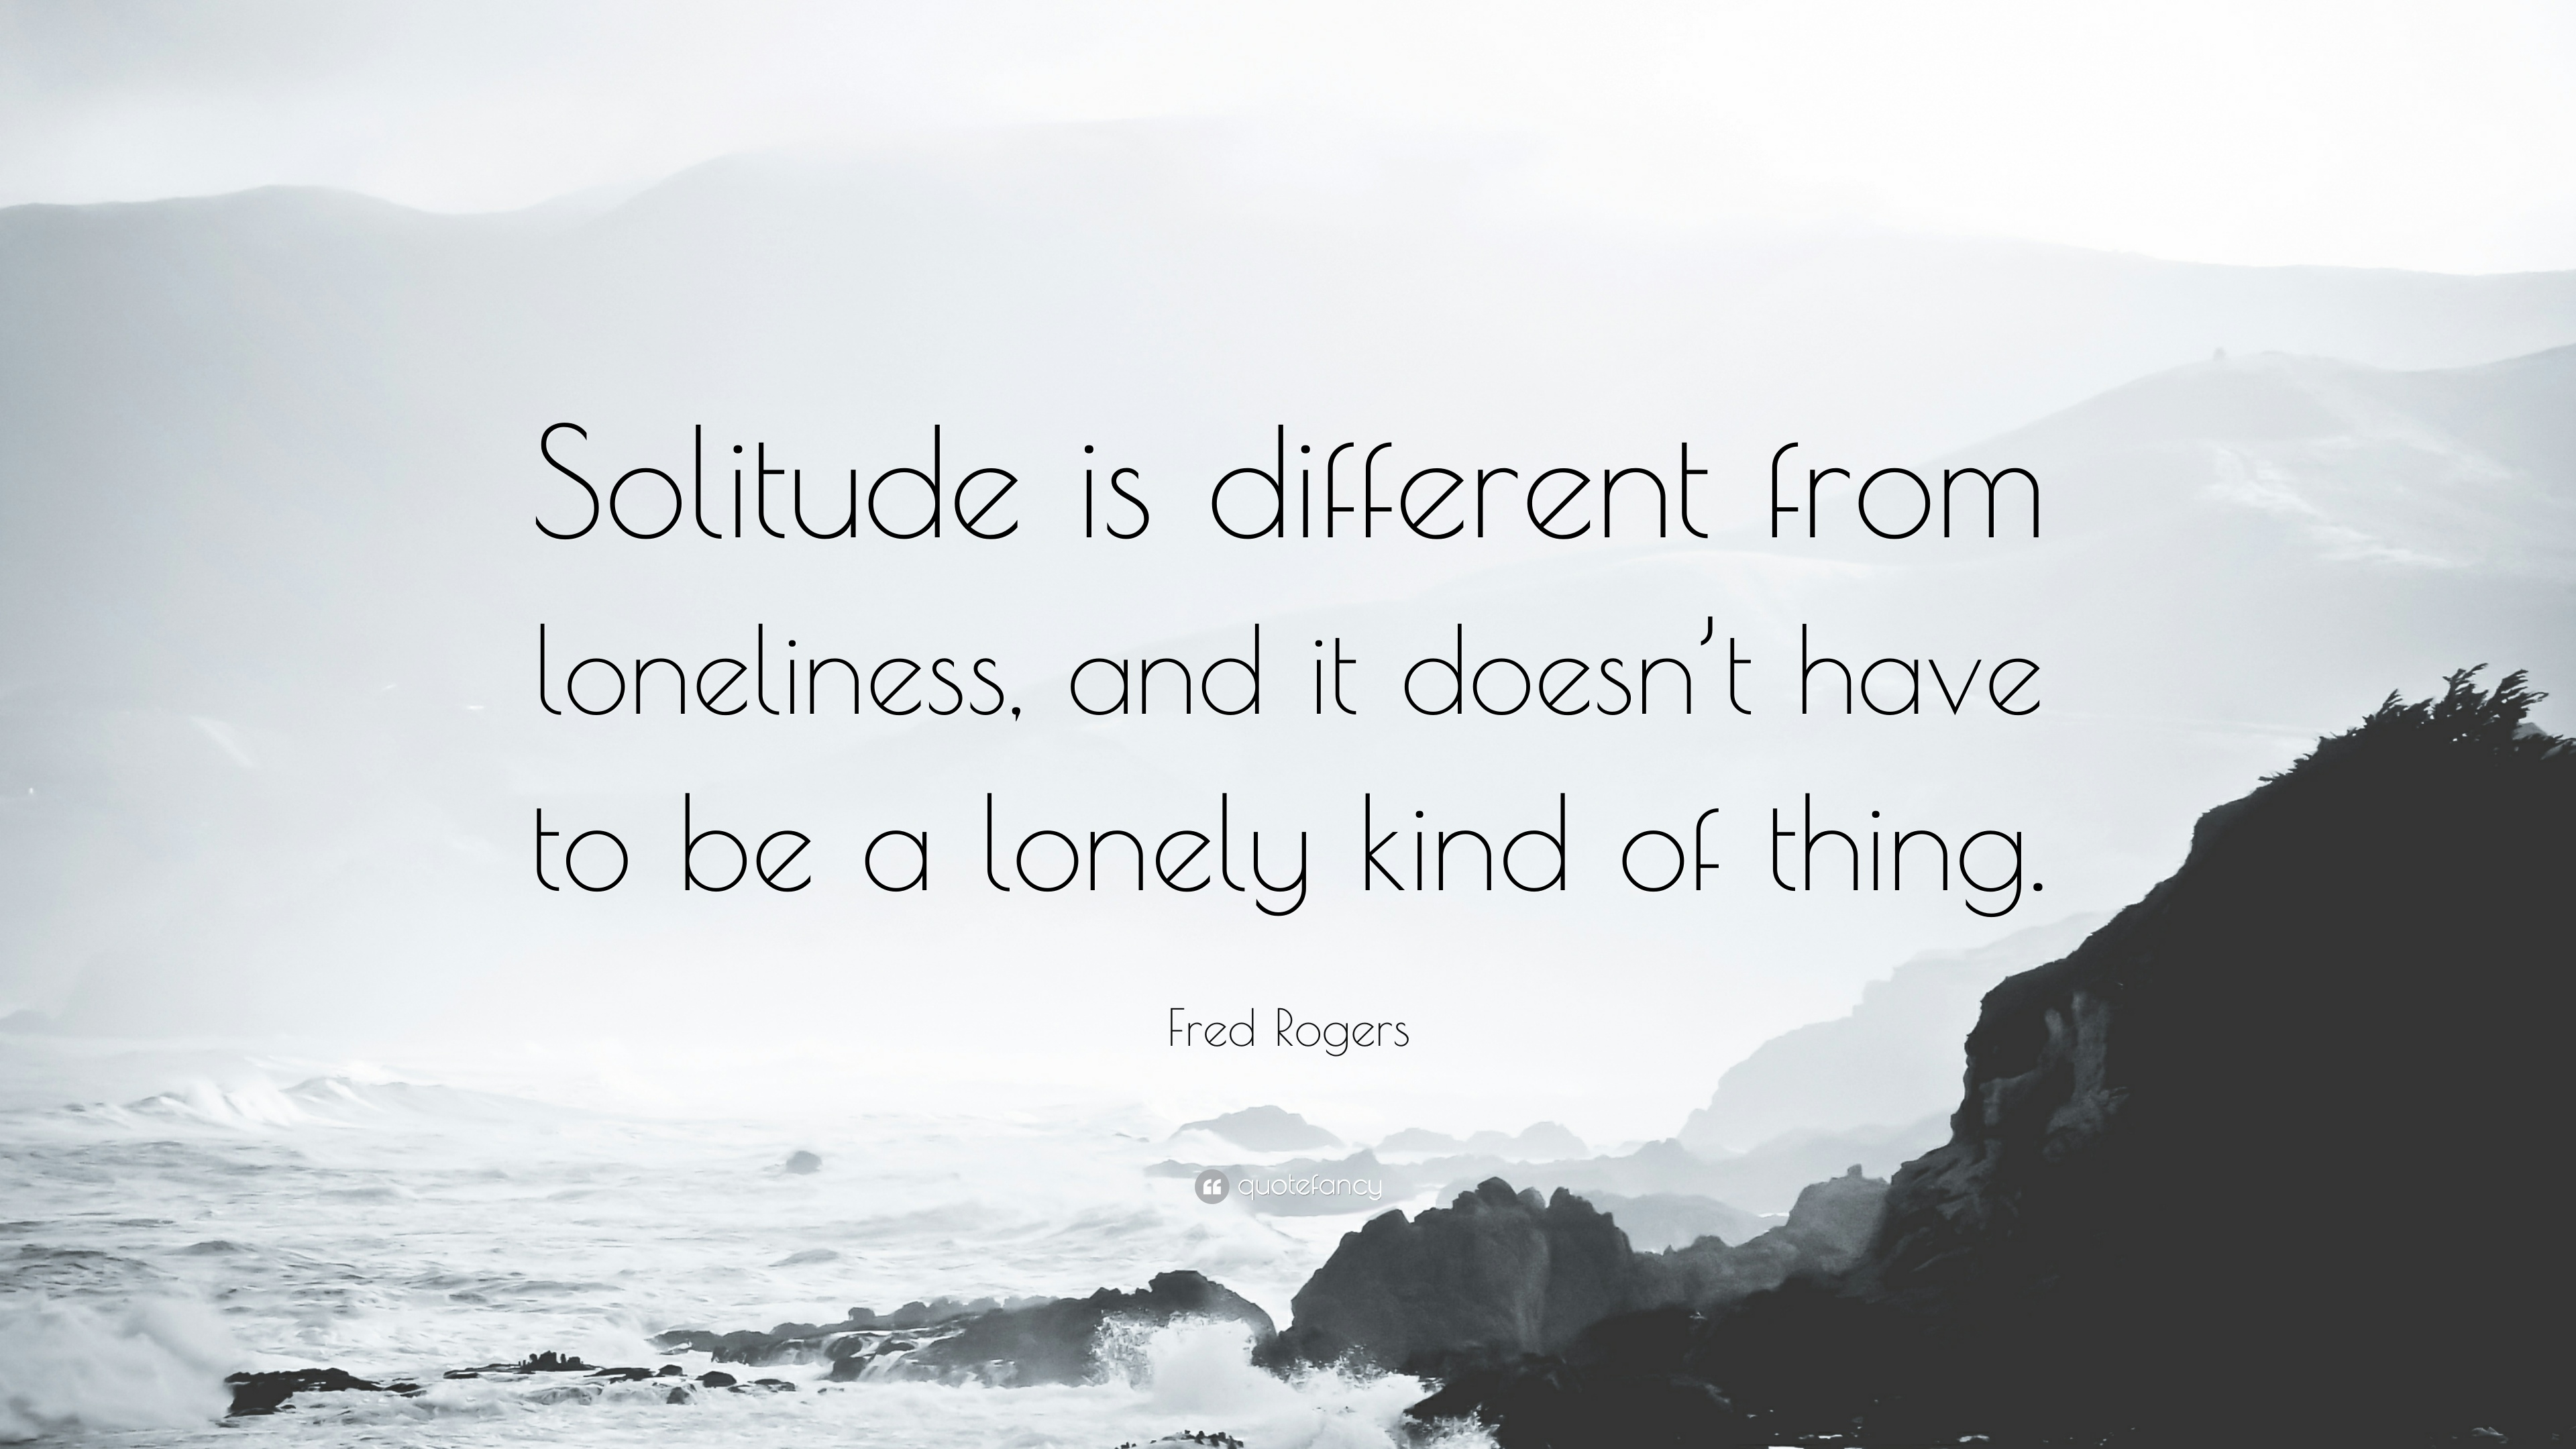 Top 10 Loneliness Quotes  10 Edition  Free Images - QuoteFancy